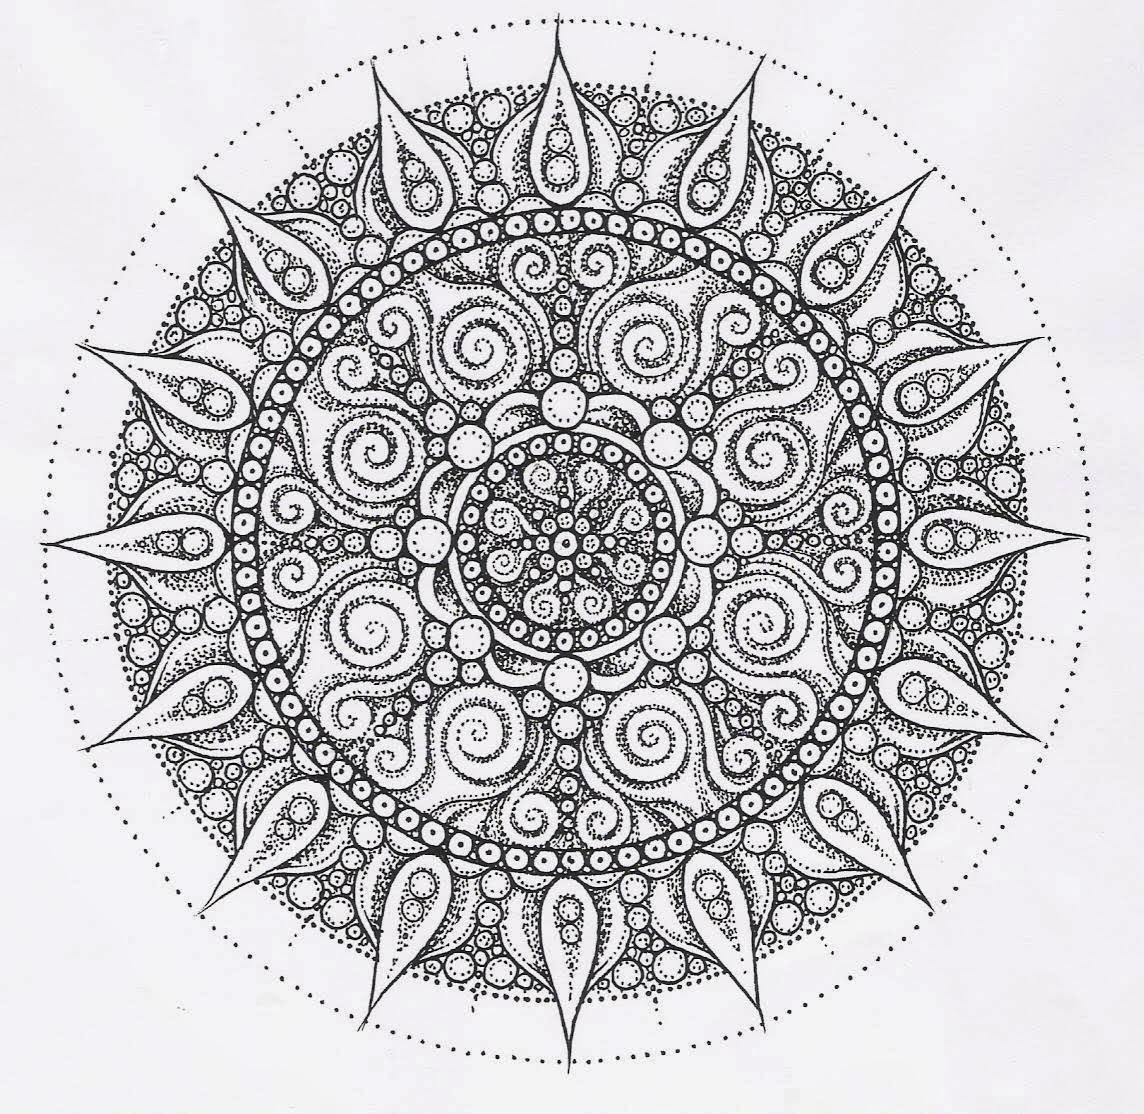 Printable coloring pages | free printable coloring sheets mandalas